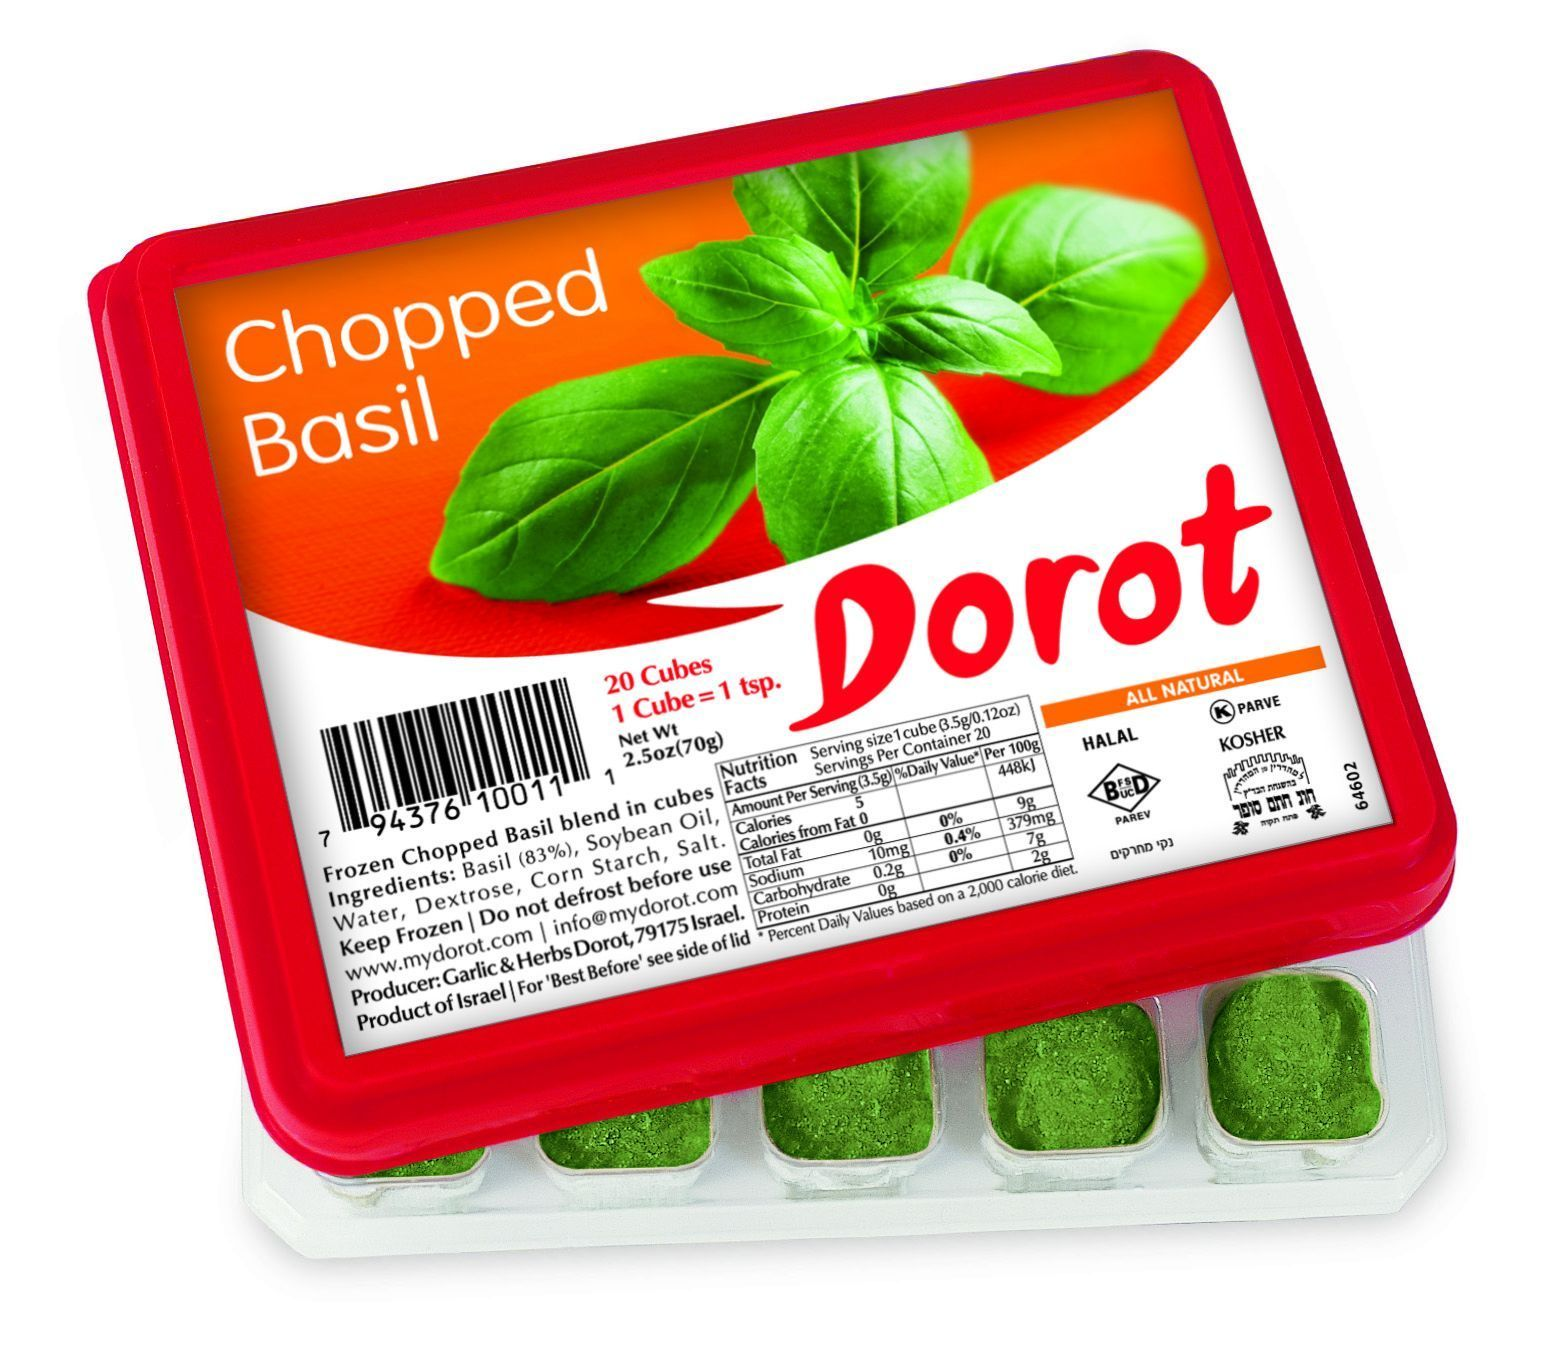 Chopped Basil Tray Cooking Essentials Freezing Herbs Frozen